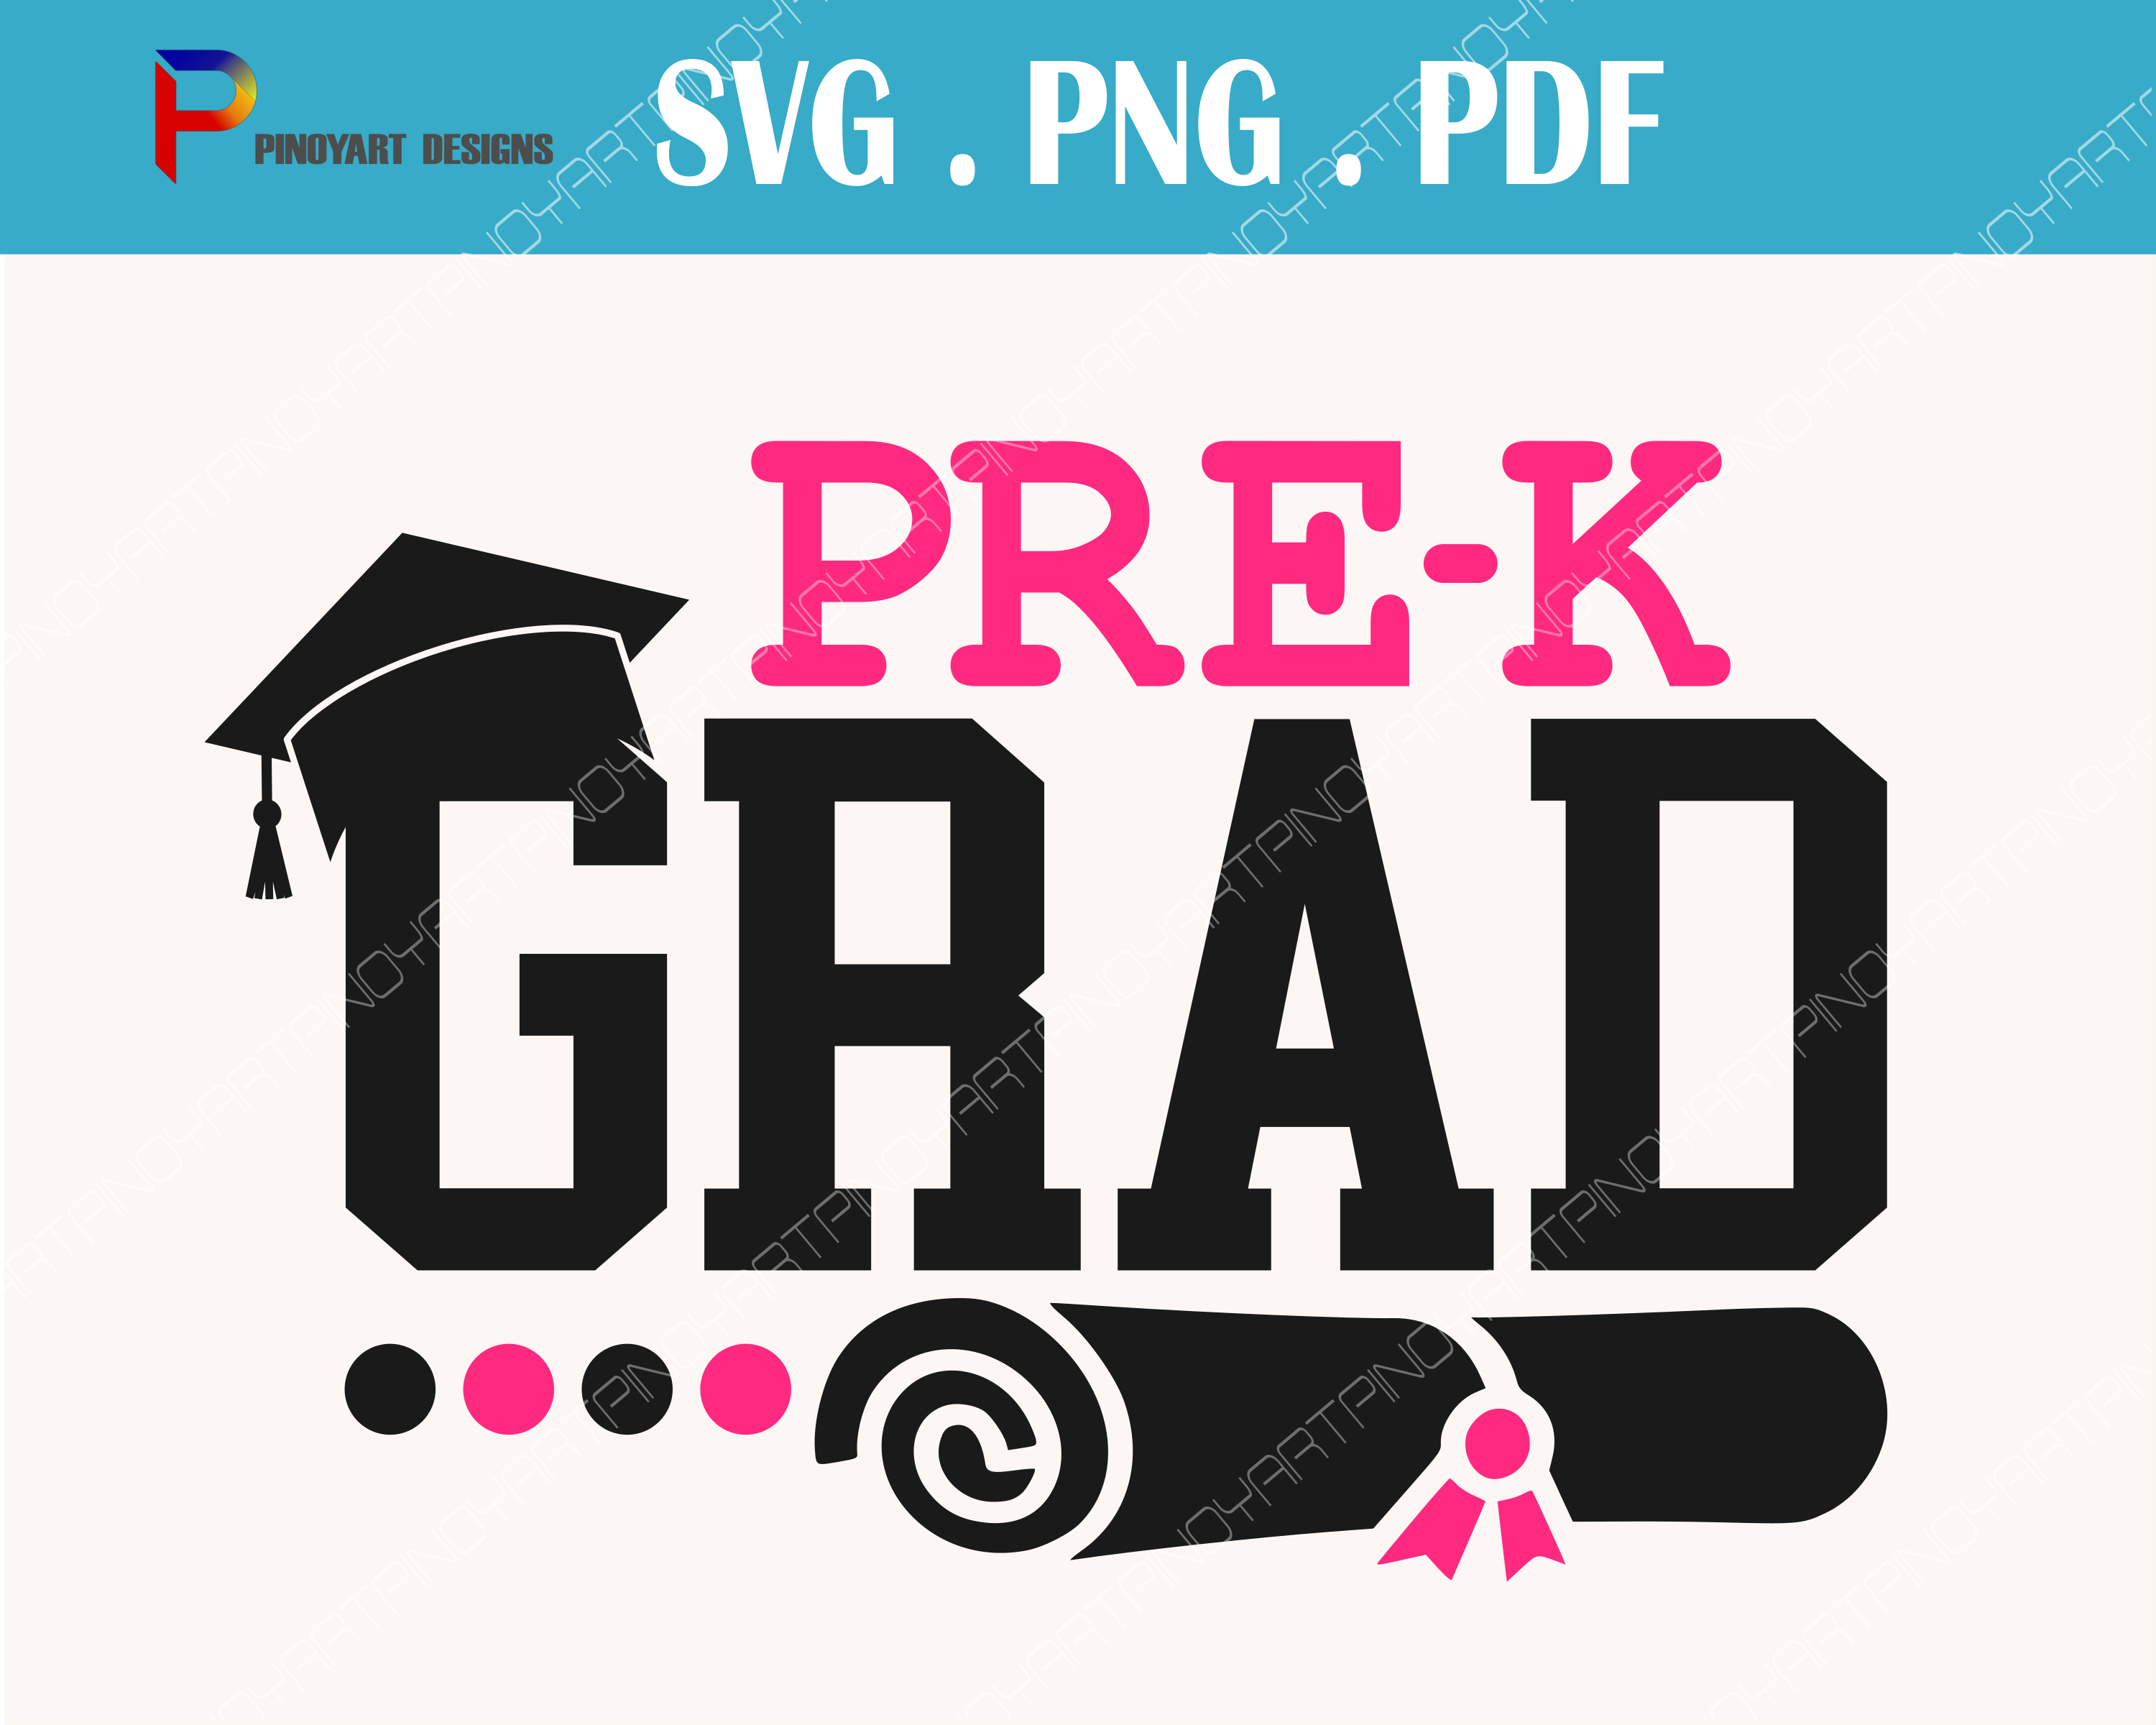 Pre-k Grad Svg, Kindergarten Svg, Pre-kindergarten Svg, Grad Svg, Graduation Svg, Svg, Svg Files for Cricut Graphic Crafts By Pinoyartkreatib